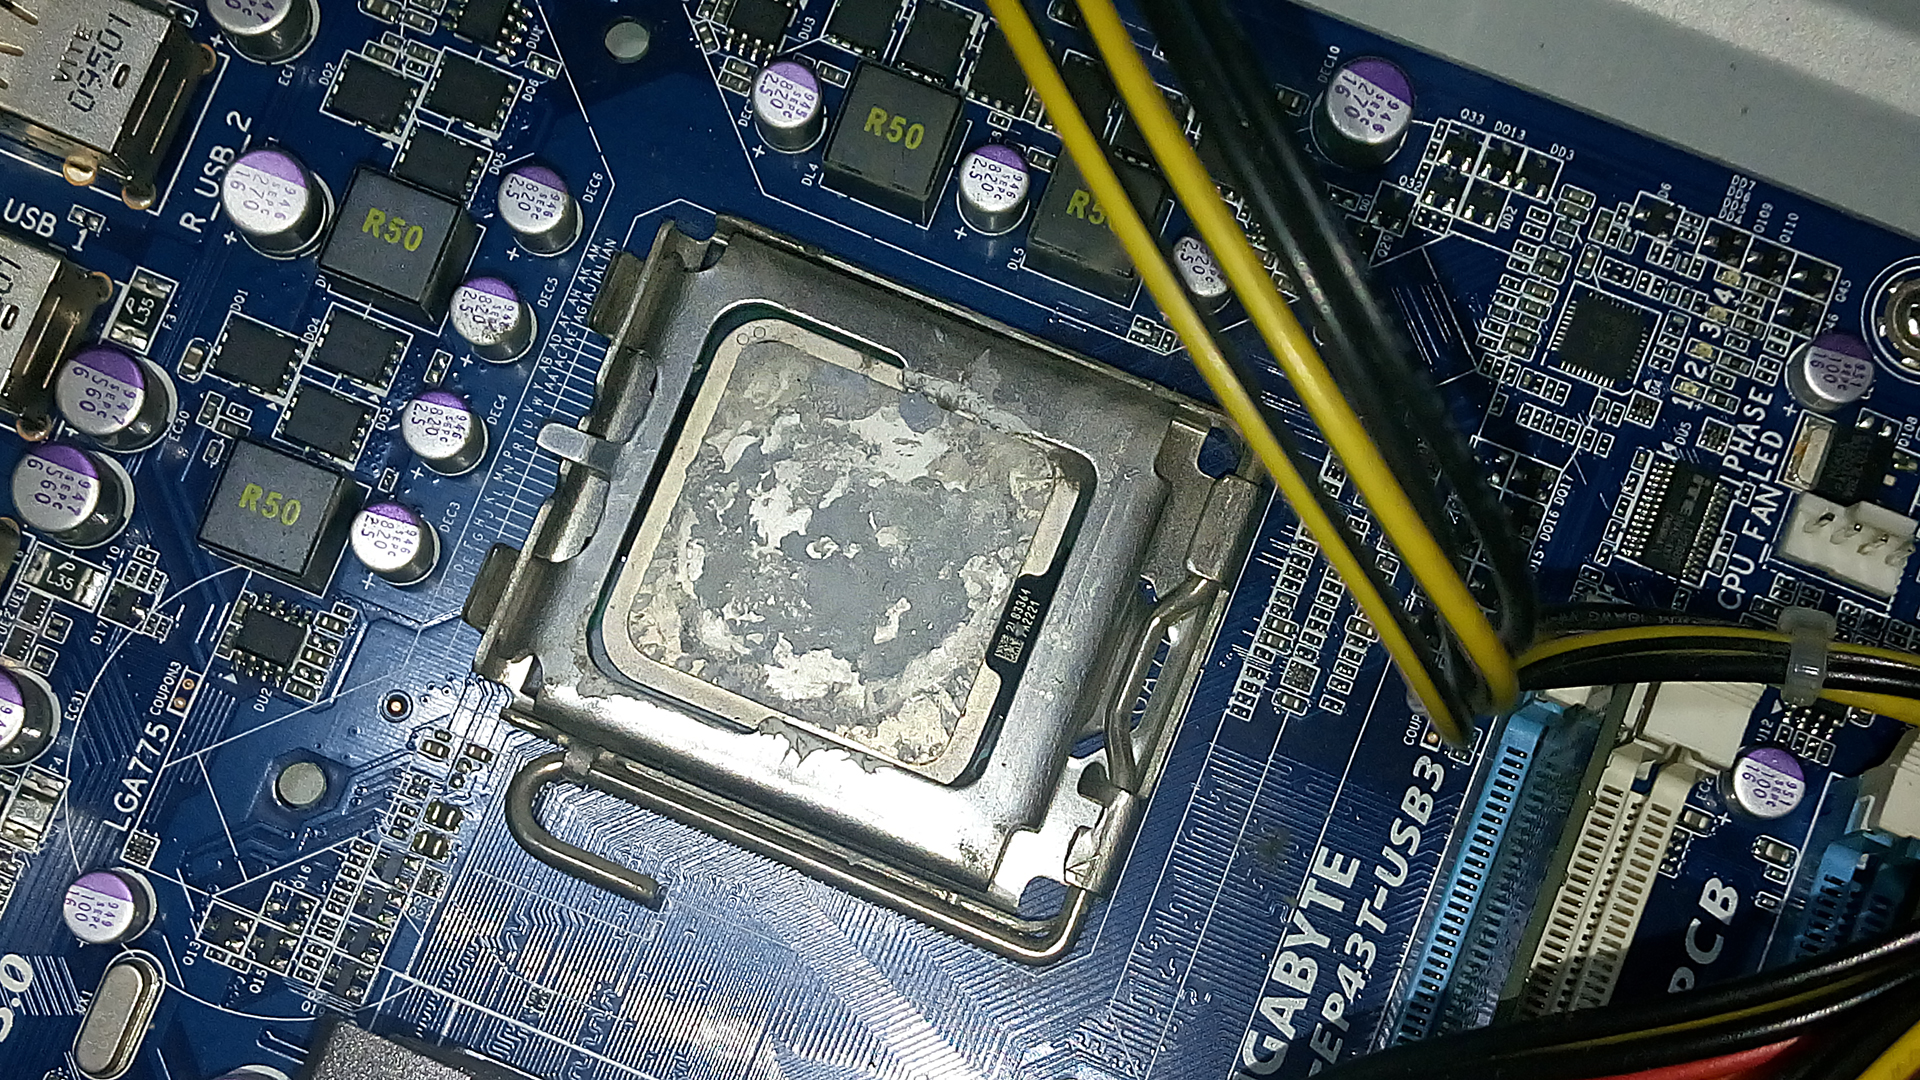 INTEL CPU Stock Cooler Thermal Paste Replacement Step-By